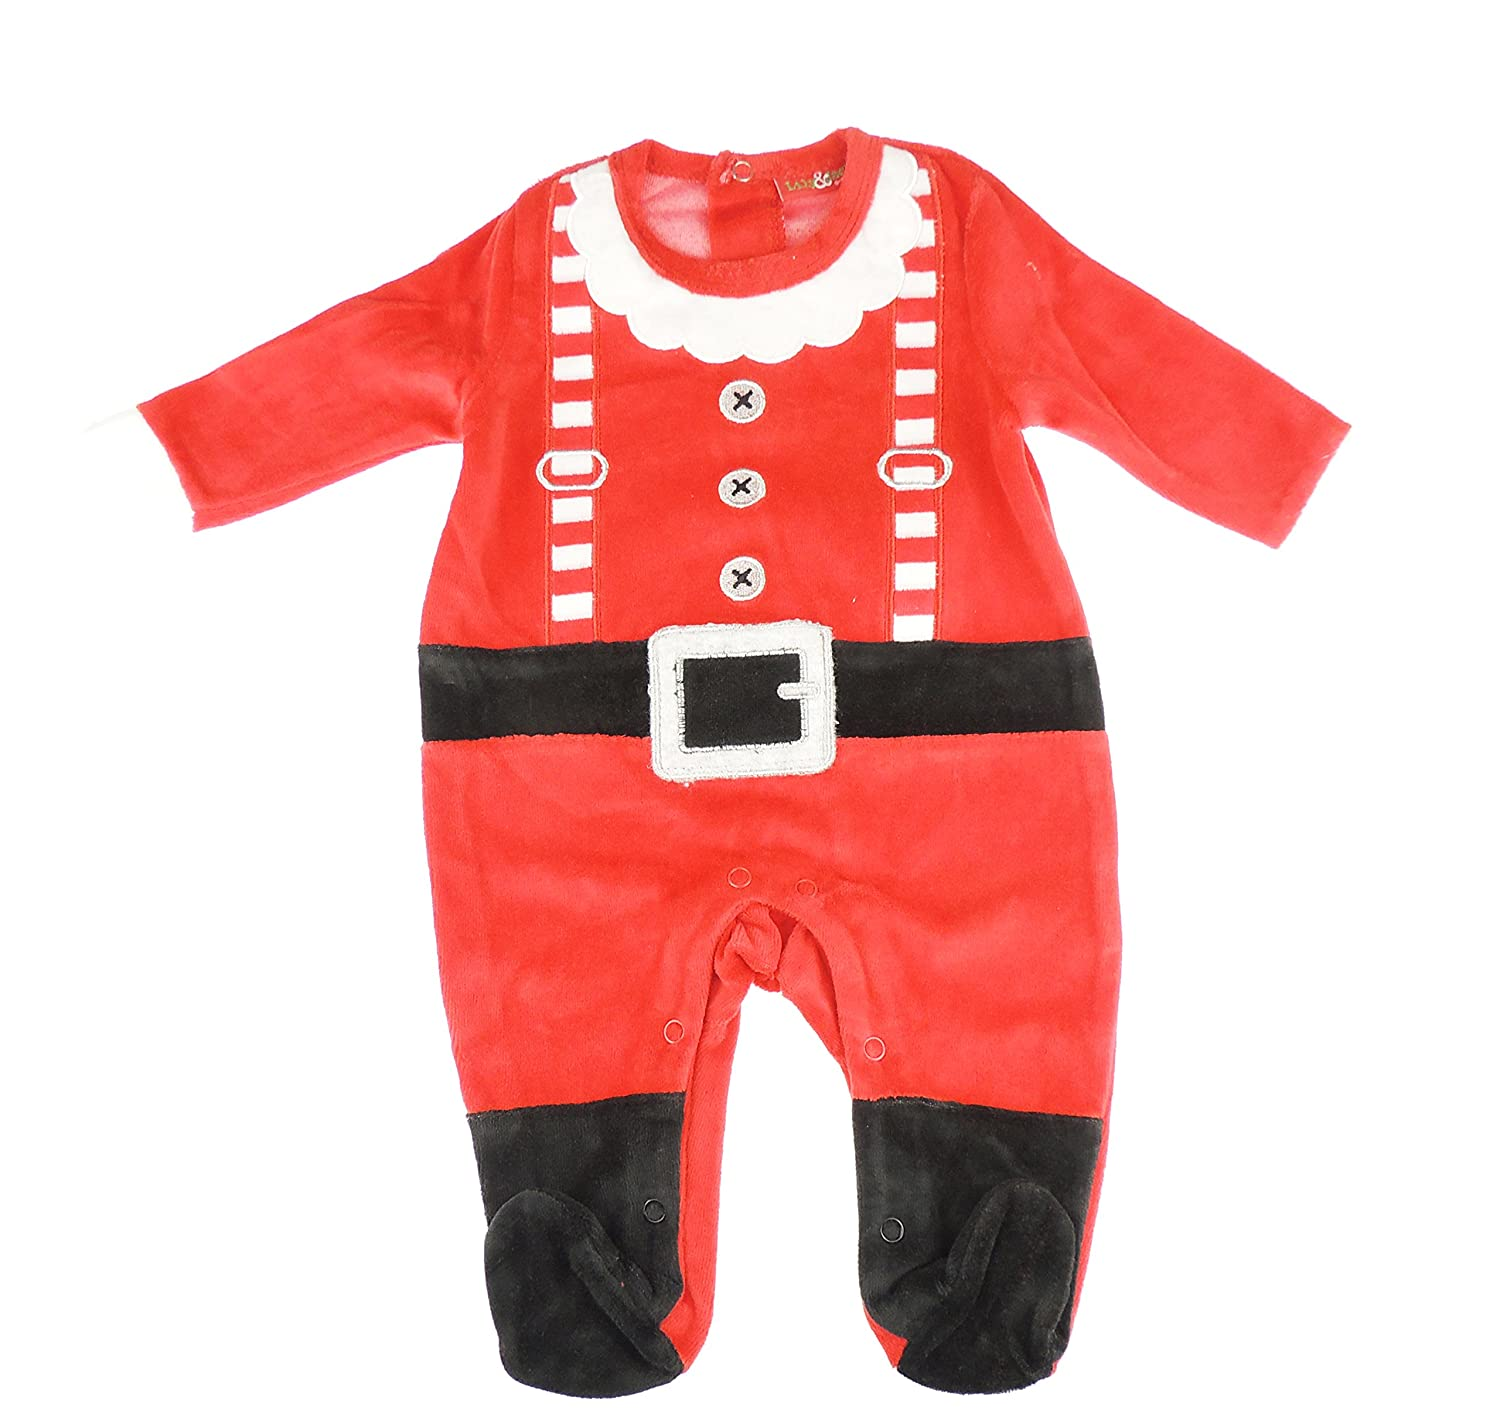 Festive Christmas Winter Baby Girls Boys Romper Sleeper All in One Santa Claus Outfit 0-3 Months Glamour Girlz